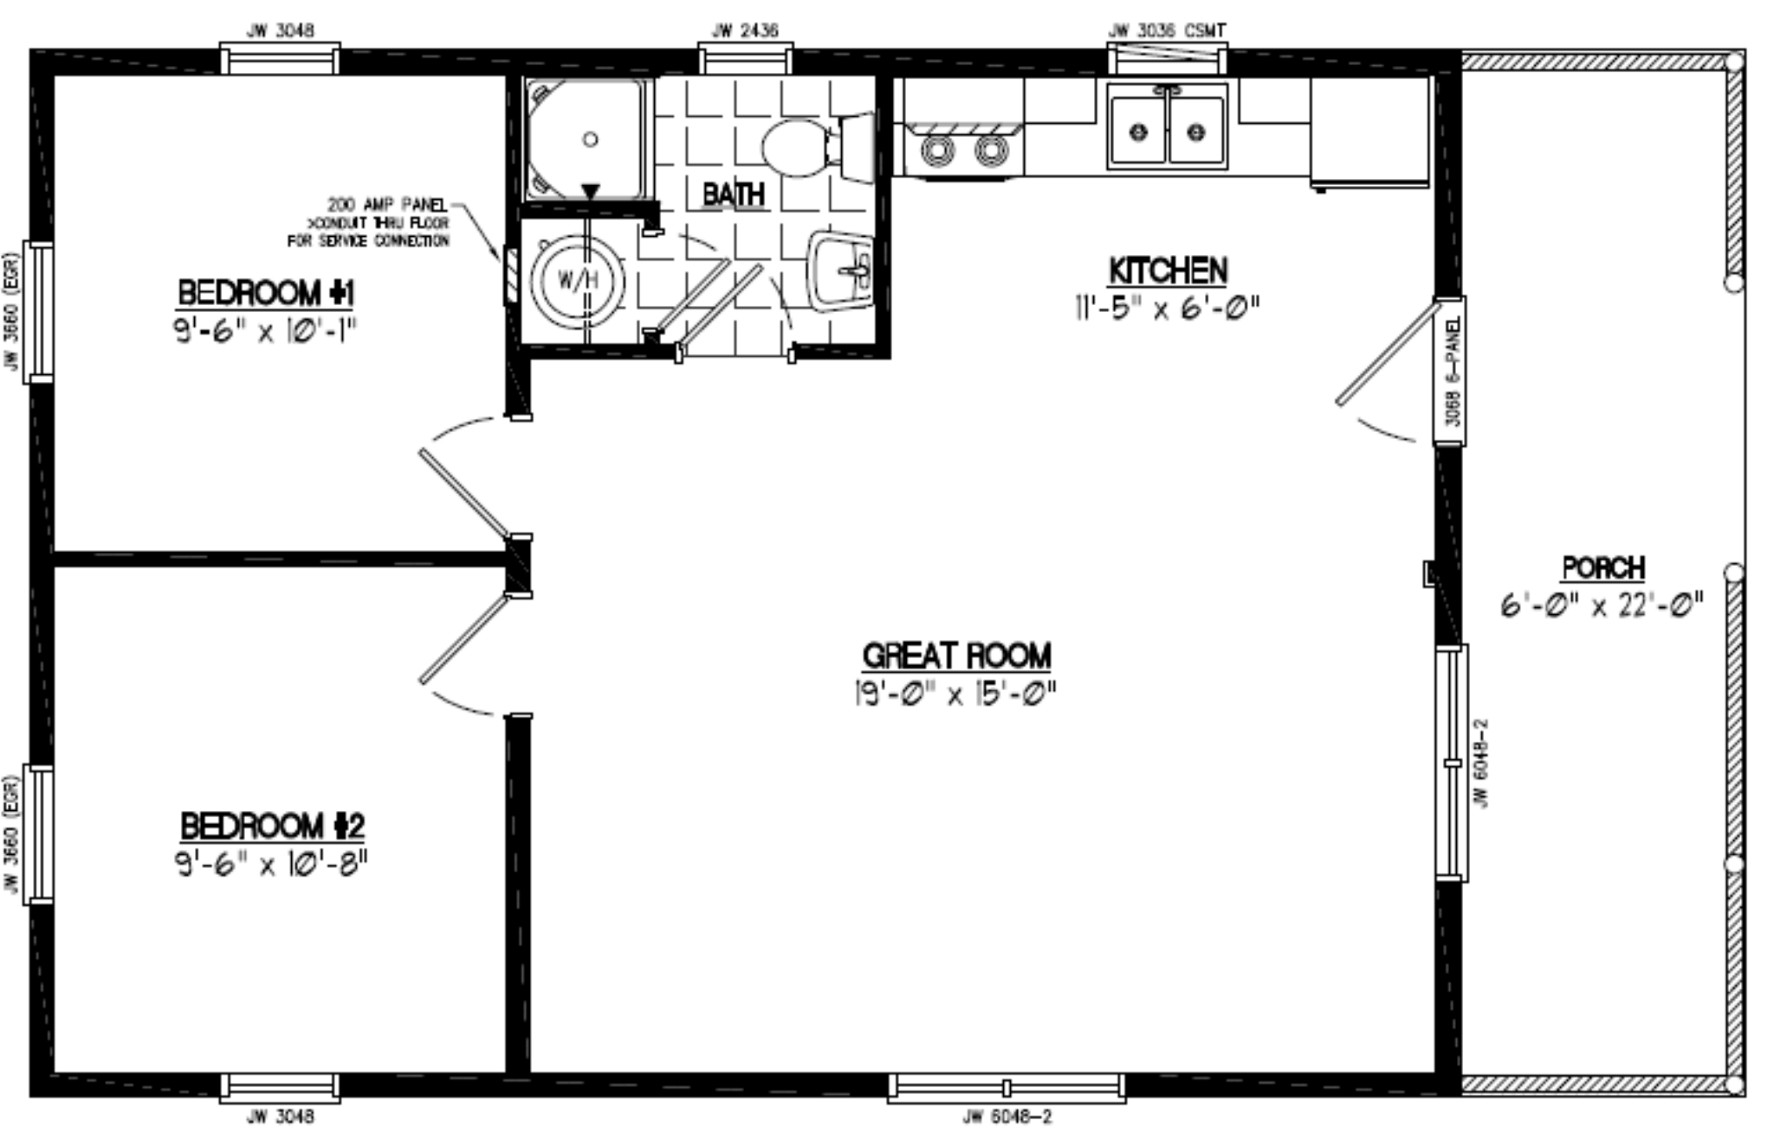 8g944w2 u further 24 X 36 House Plans together with Vastu Shastra Home Plans in addition Open Floor Plans further One Bedroom House Plans Vastu. on 2 bedroom apartment floor plan for bat